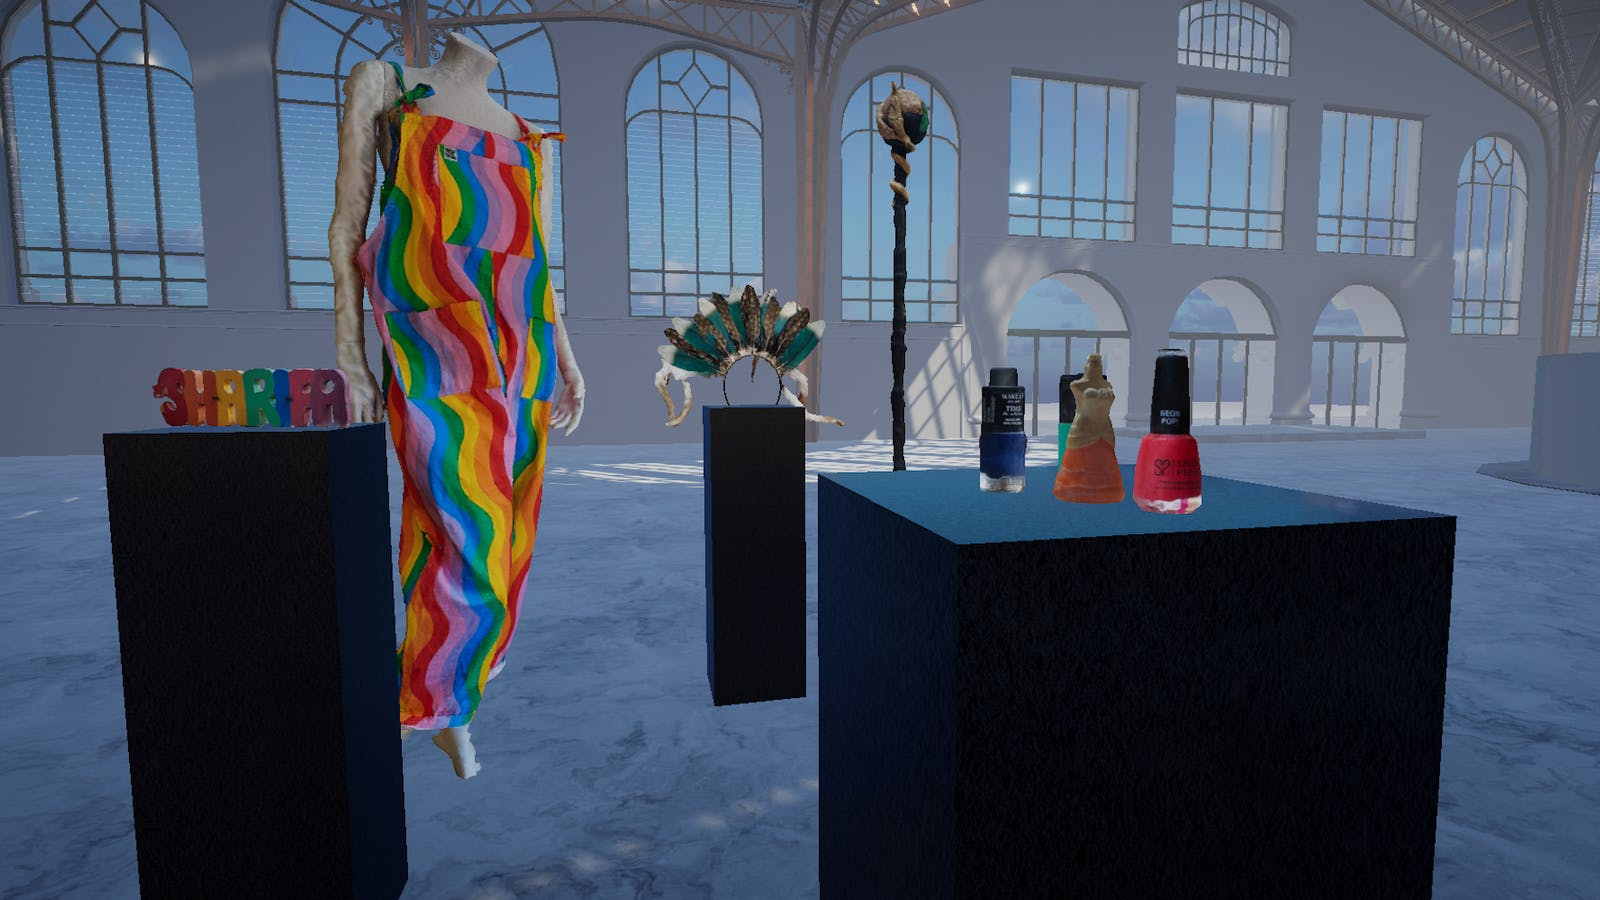 An image from the VR-based LGBTQ+ museum.